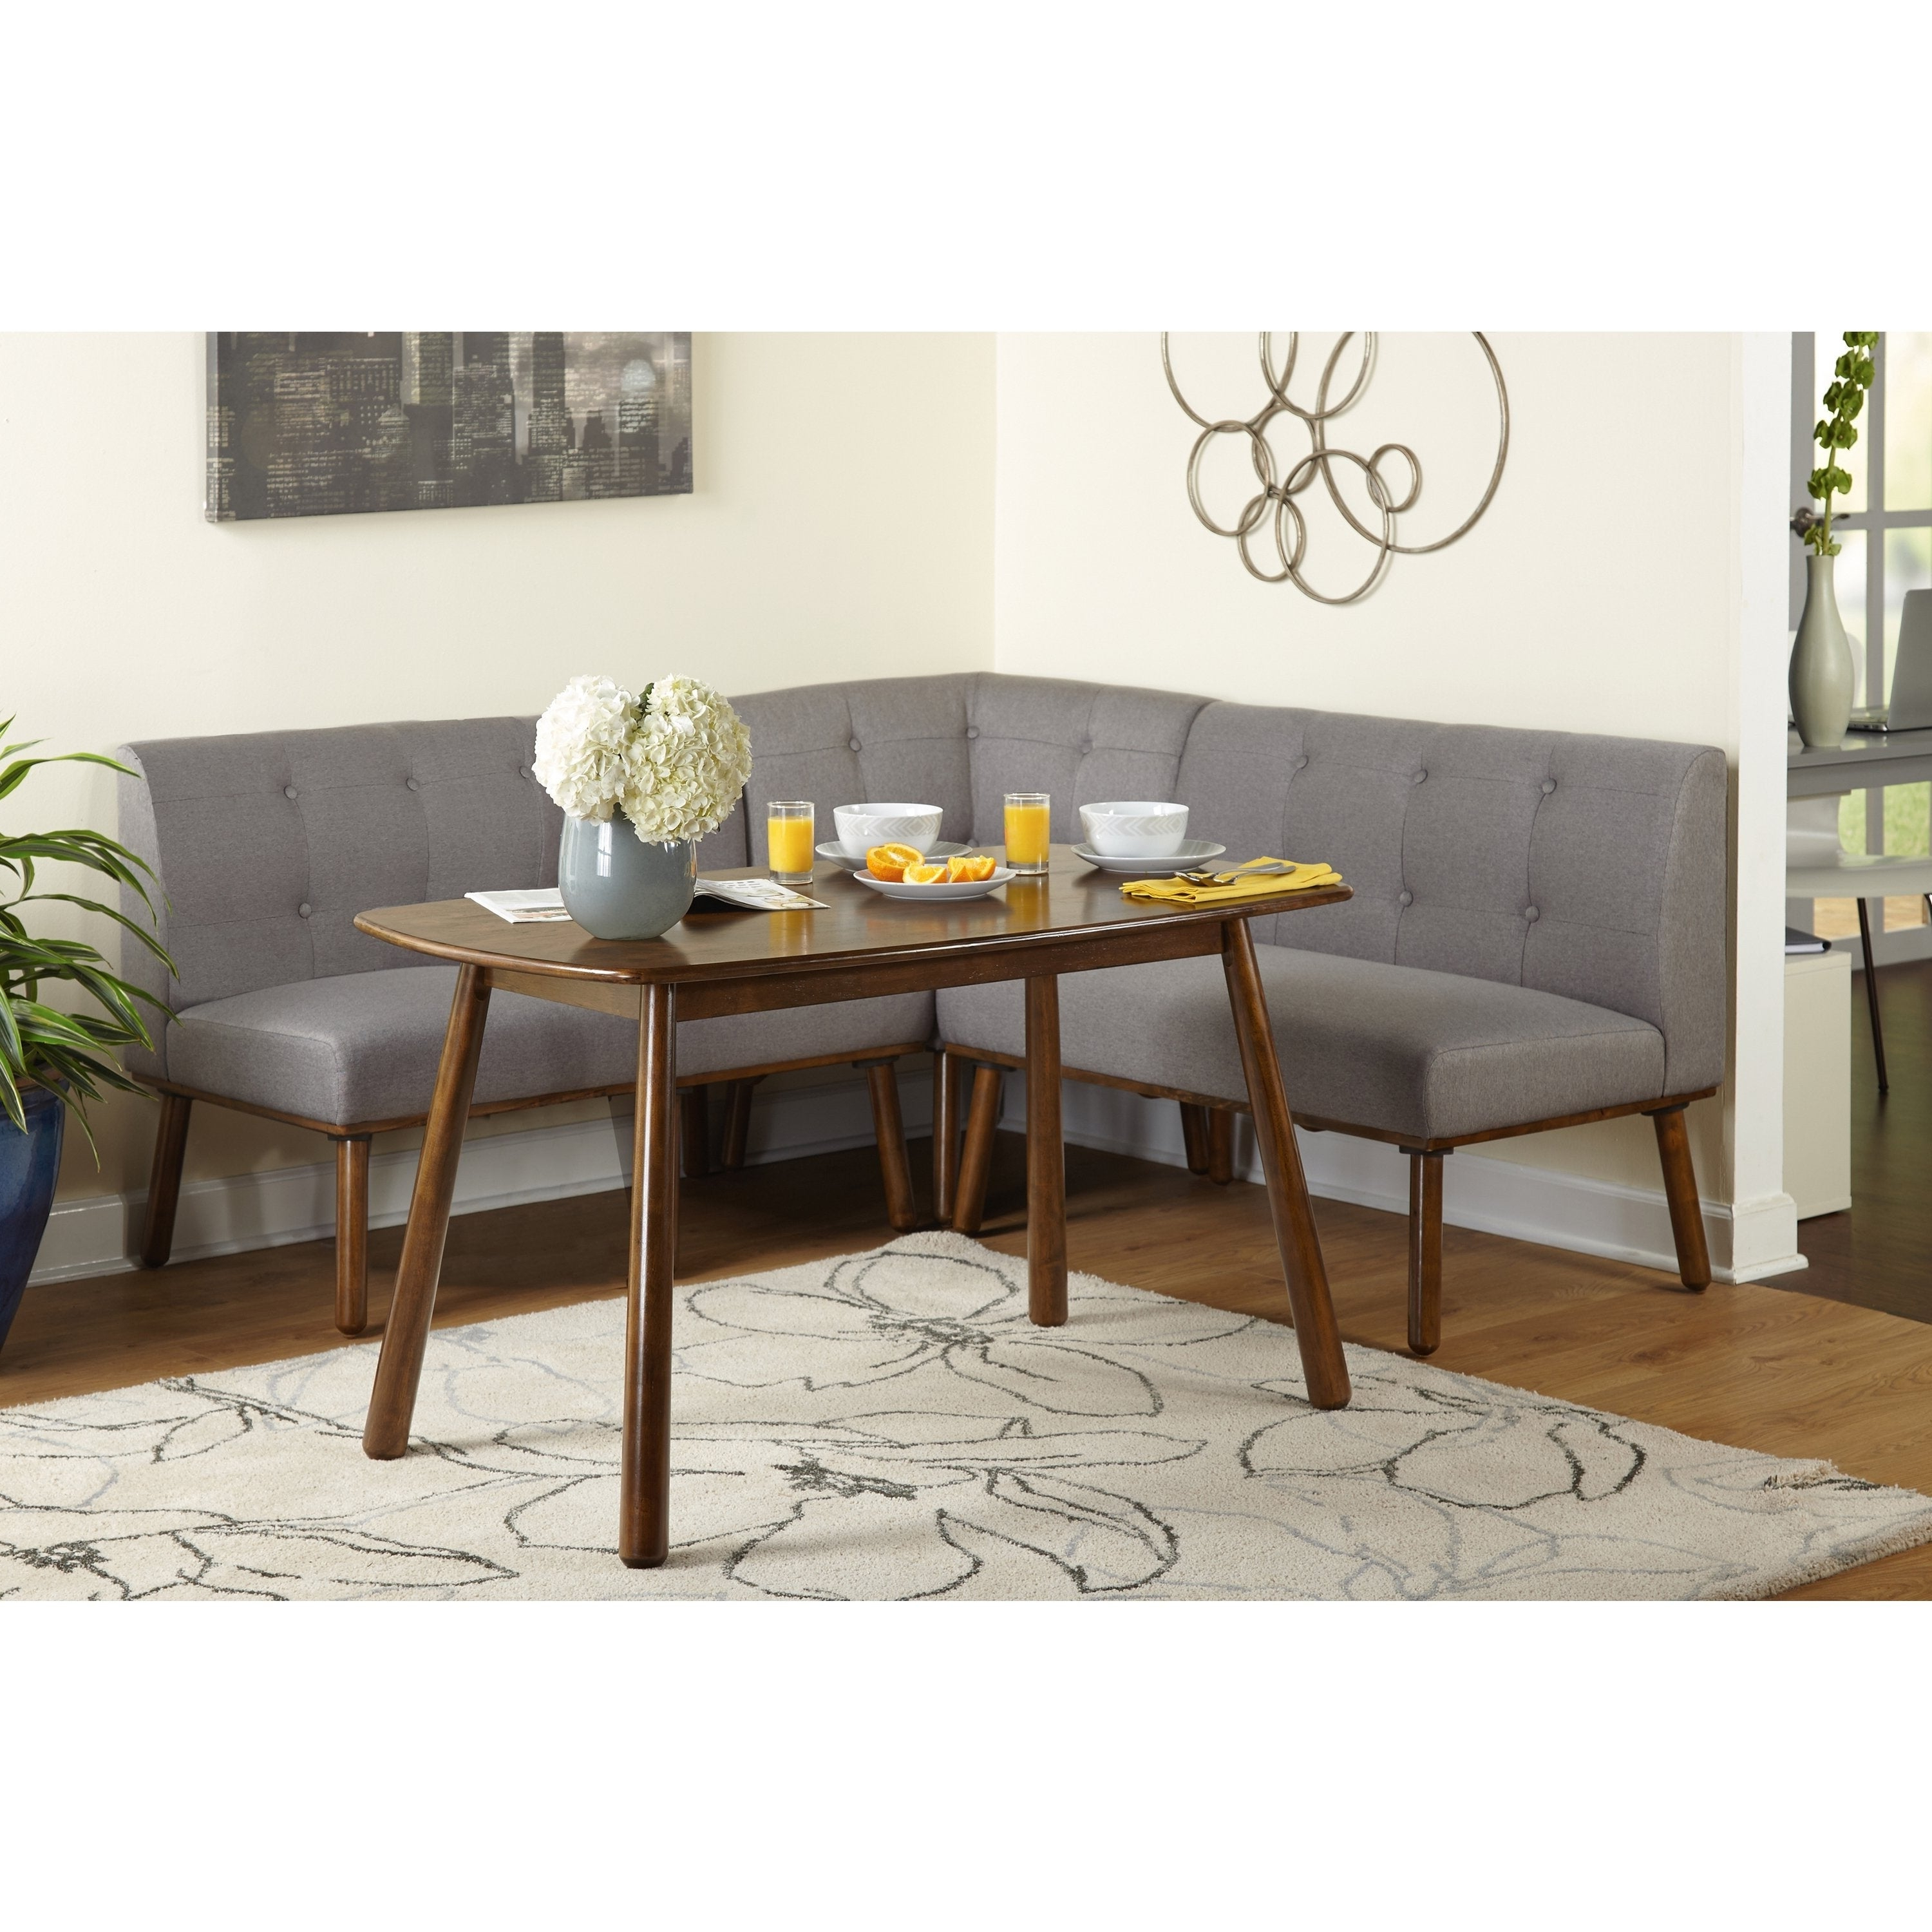 Widely Used Buy 3 Piece Sets Kitchen & Dining Room Sets Online At Overstock Inside Rossiter 3 Piece Dining Sets (View 12 of 25)